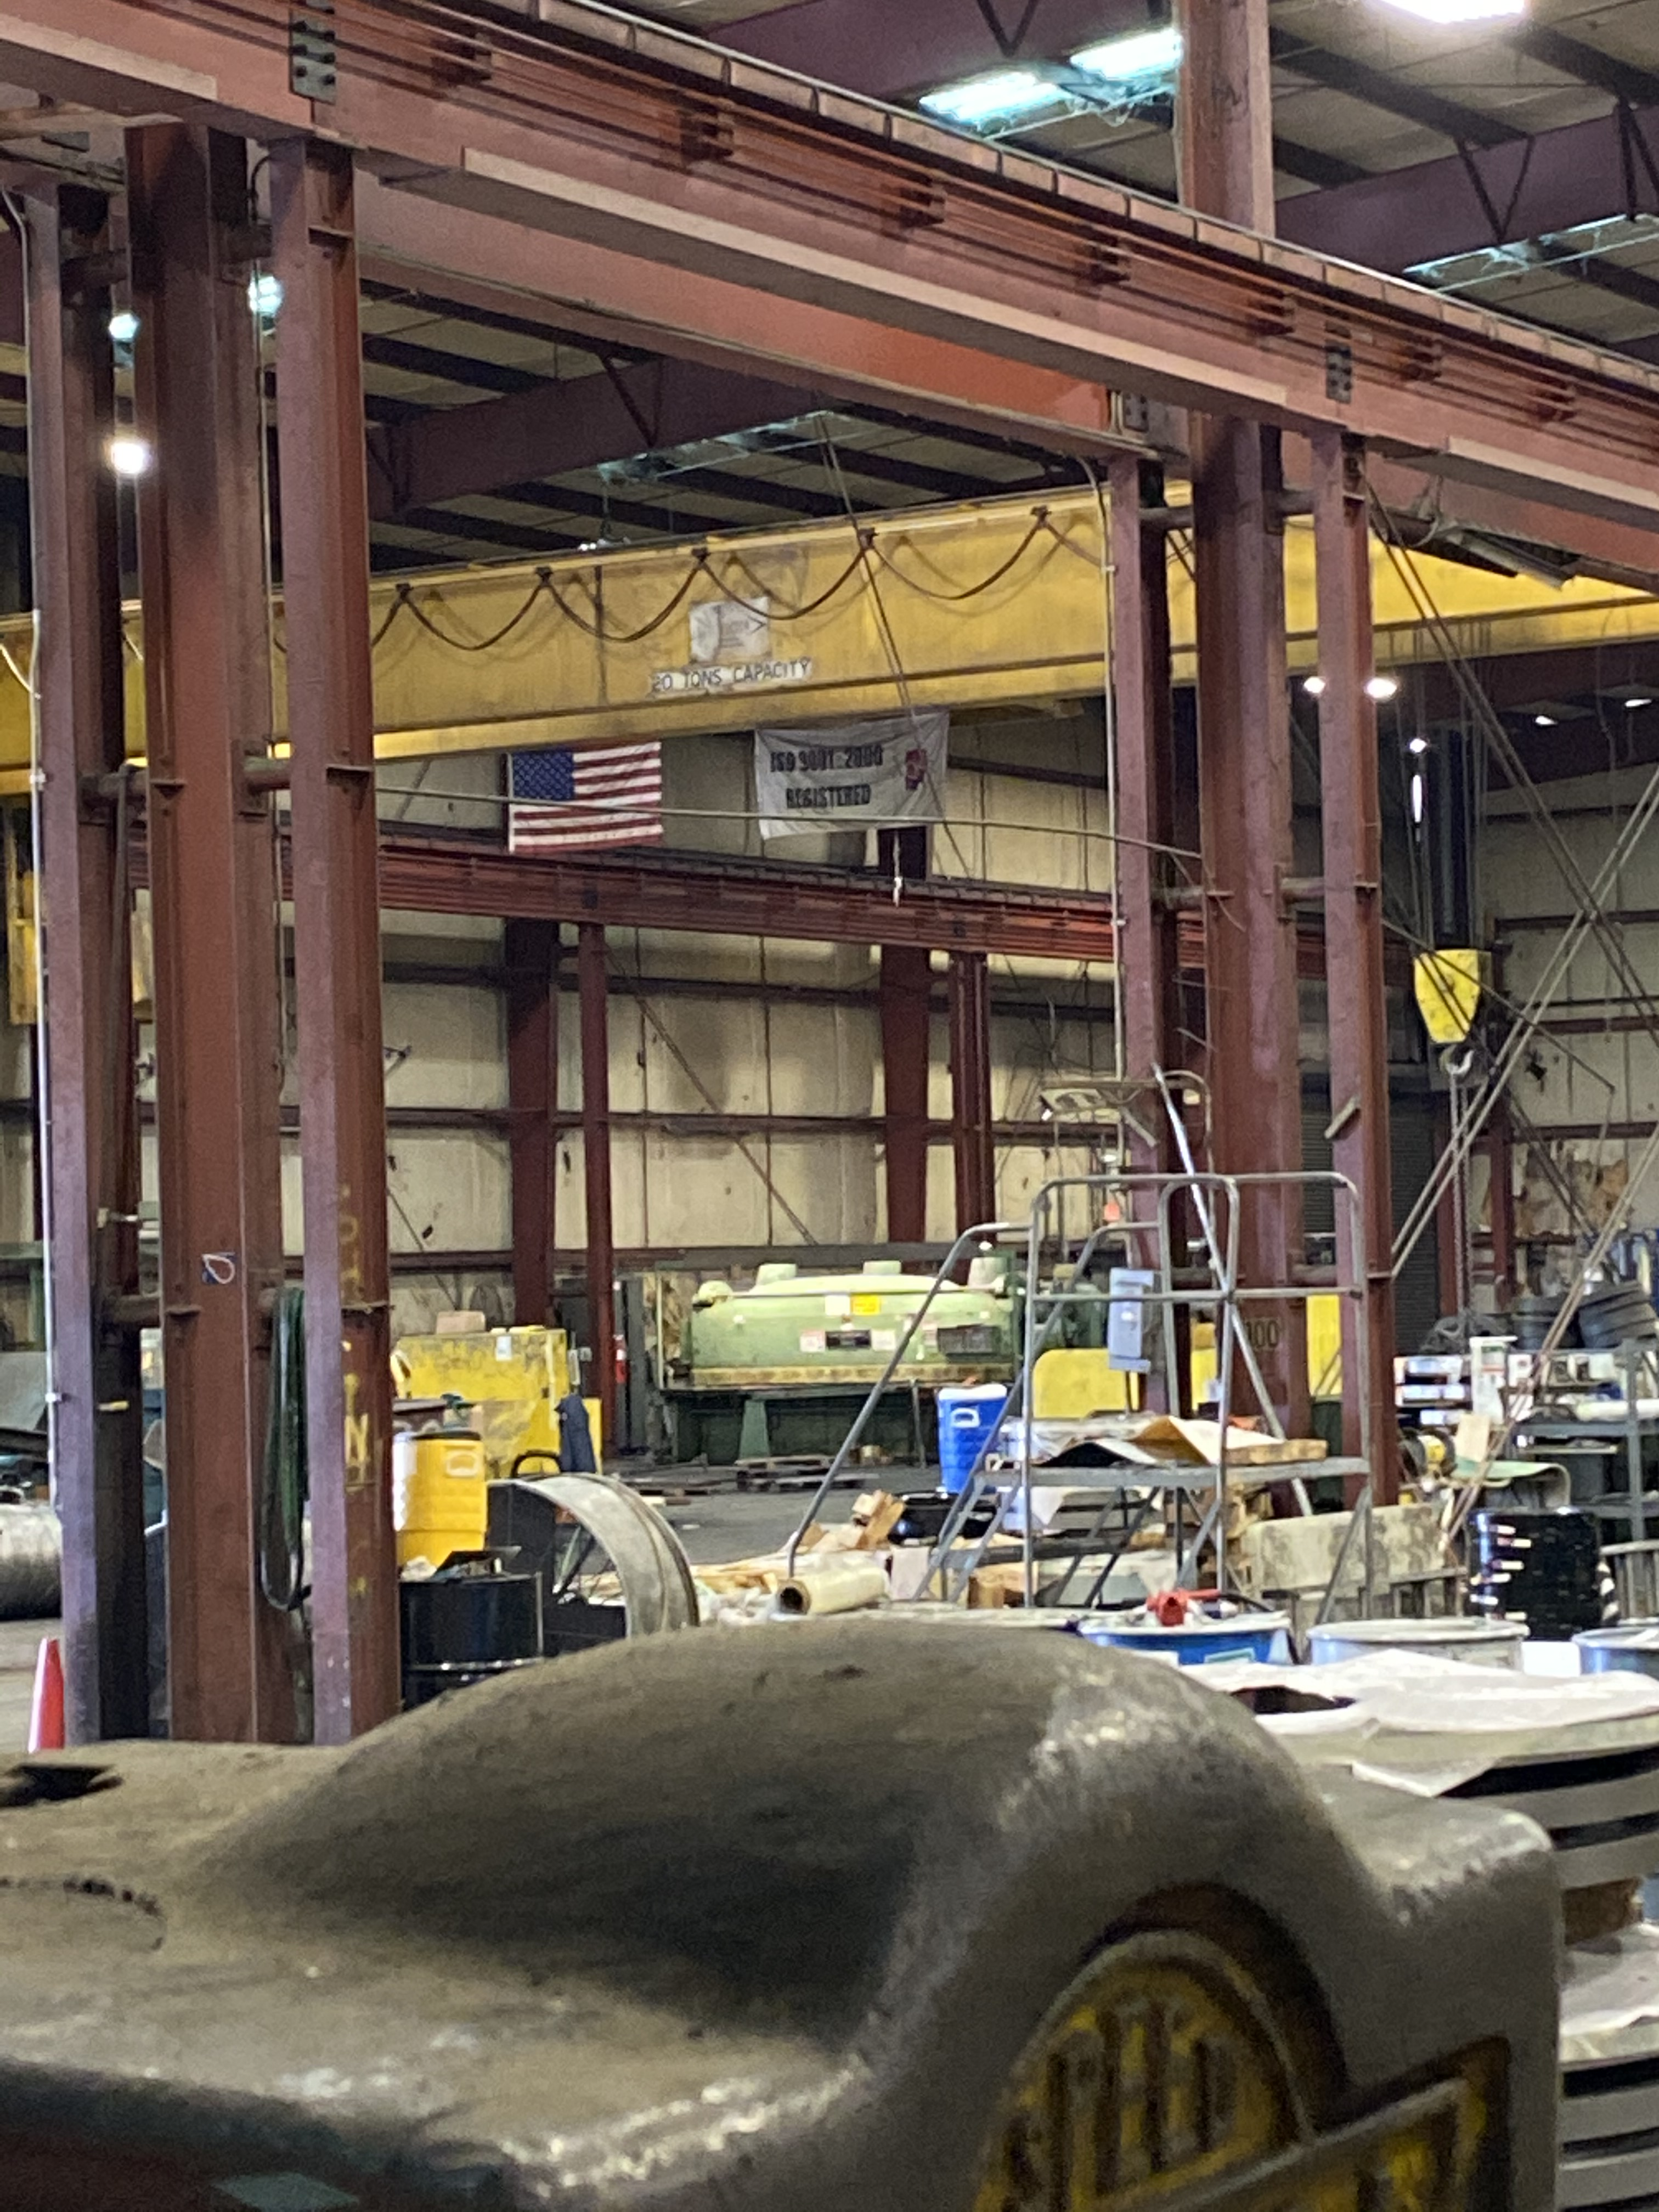 53,000 SQ. FT. Industrial Crane Building,3,000 SQ. FT. - Image 5 of 5